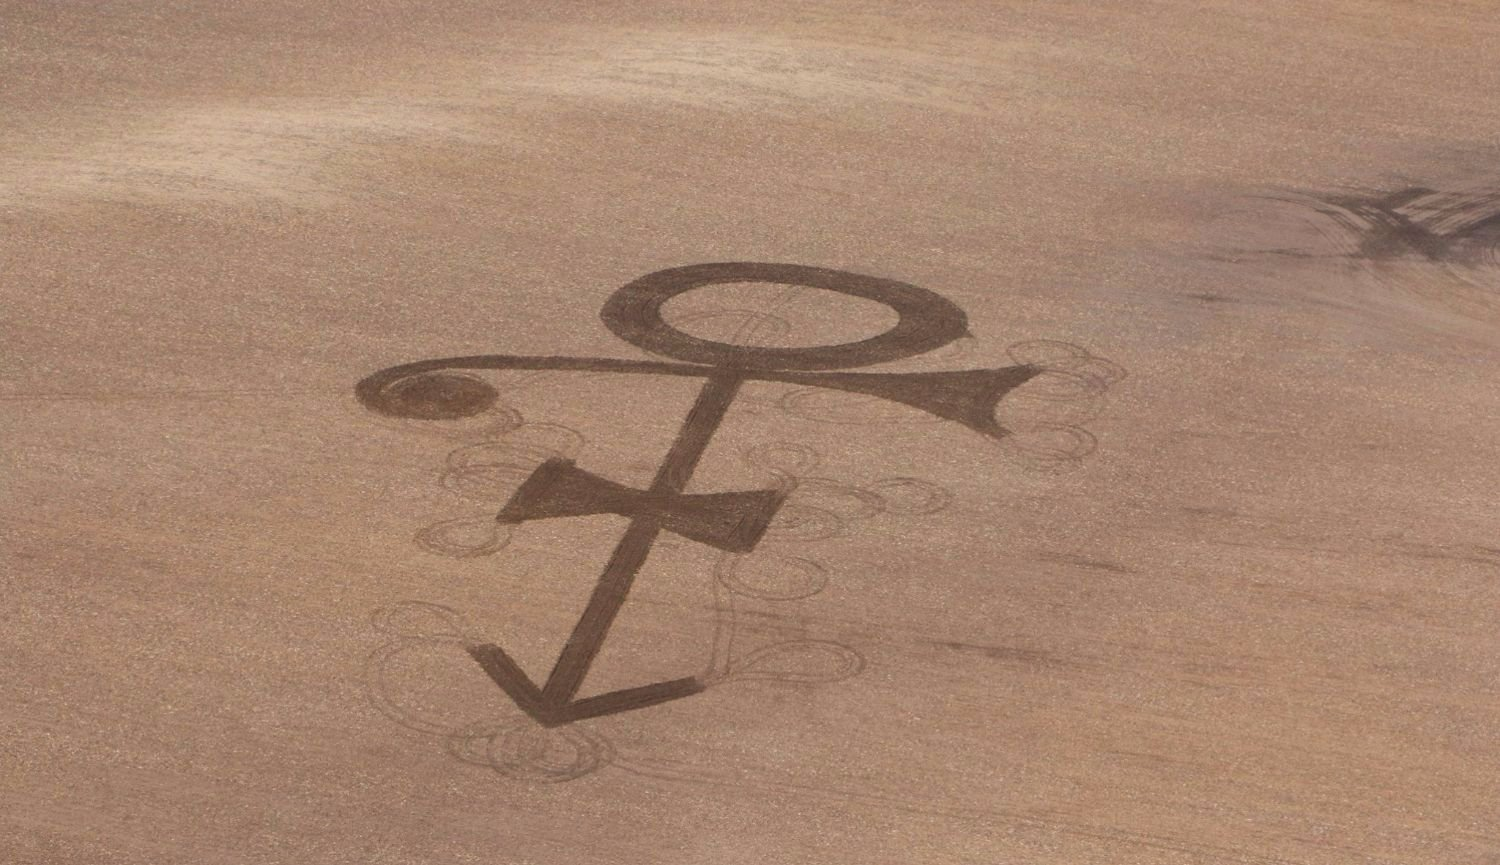 RT @mashable: Farmer's Prince tribute is a massive 'love symbol' crop circle: https://t.co/iQeSi1sMhO https://t.co/dLufJrleGH